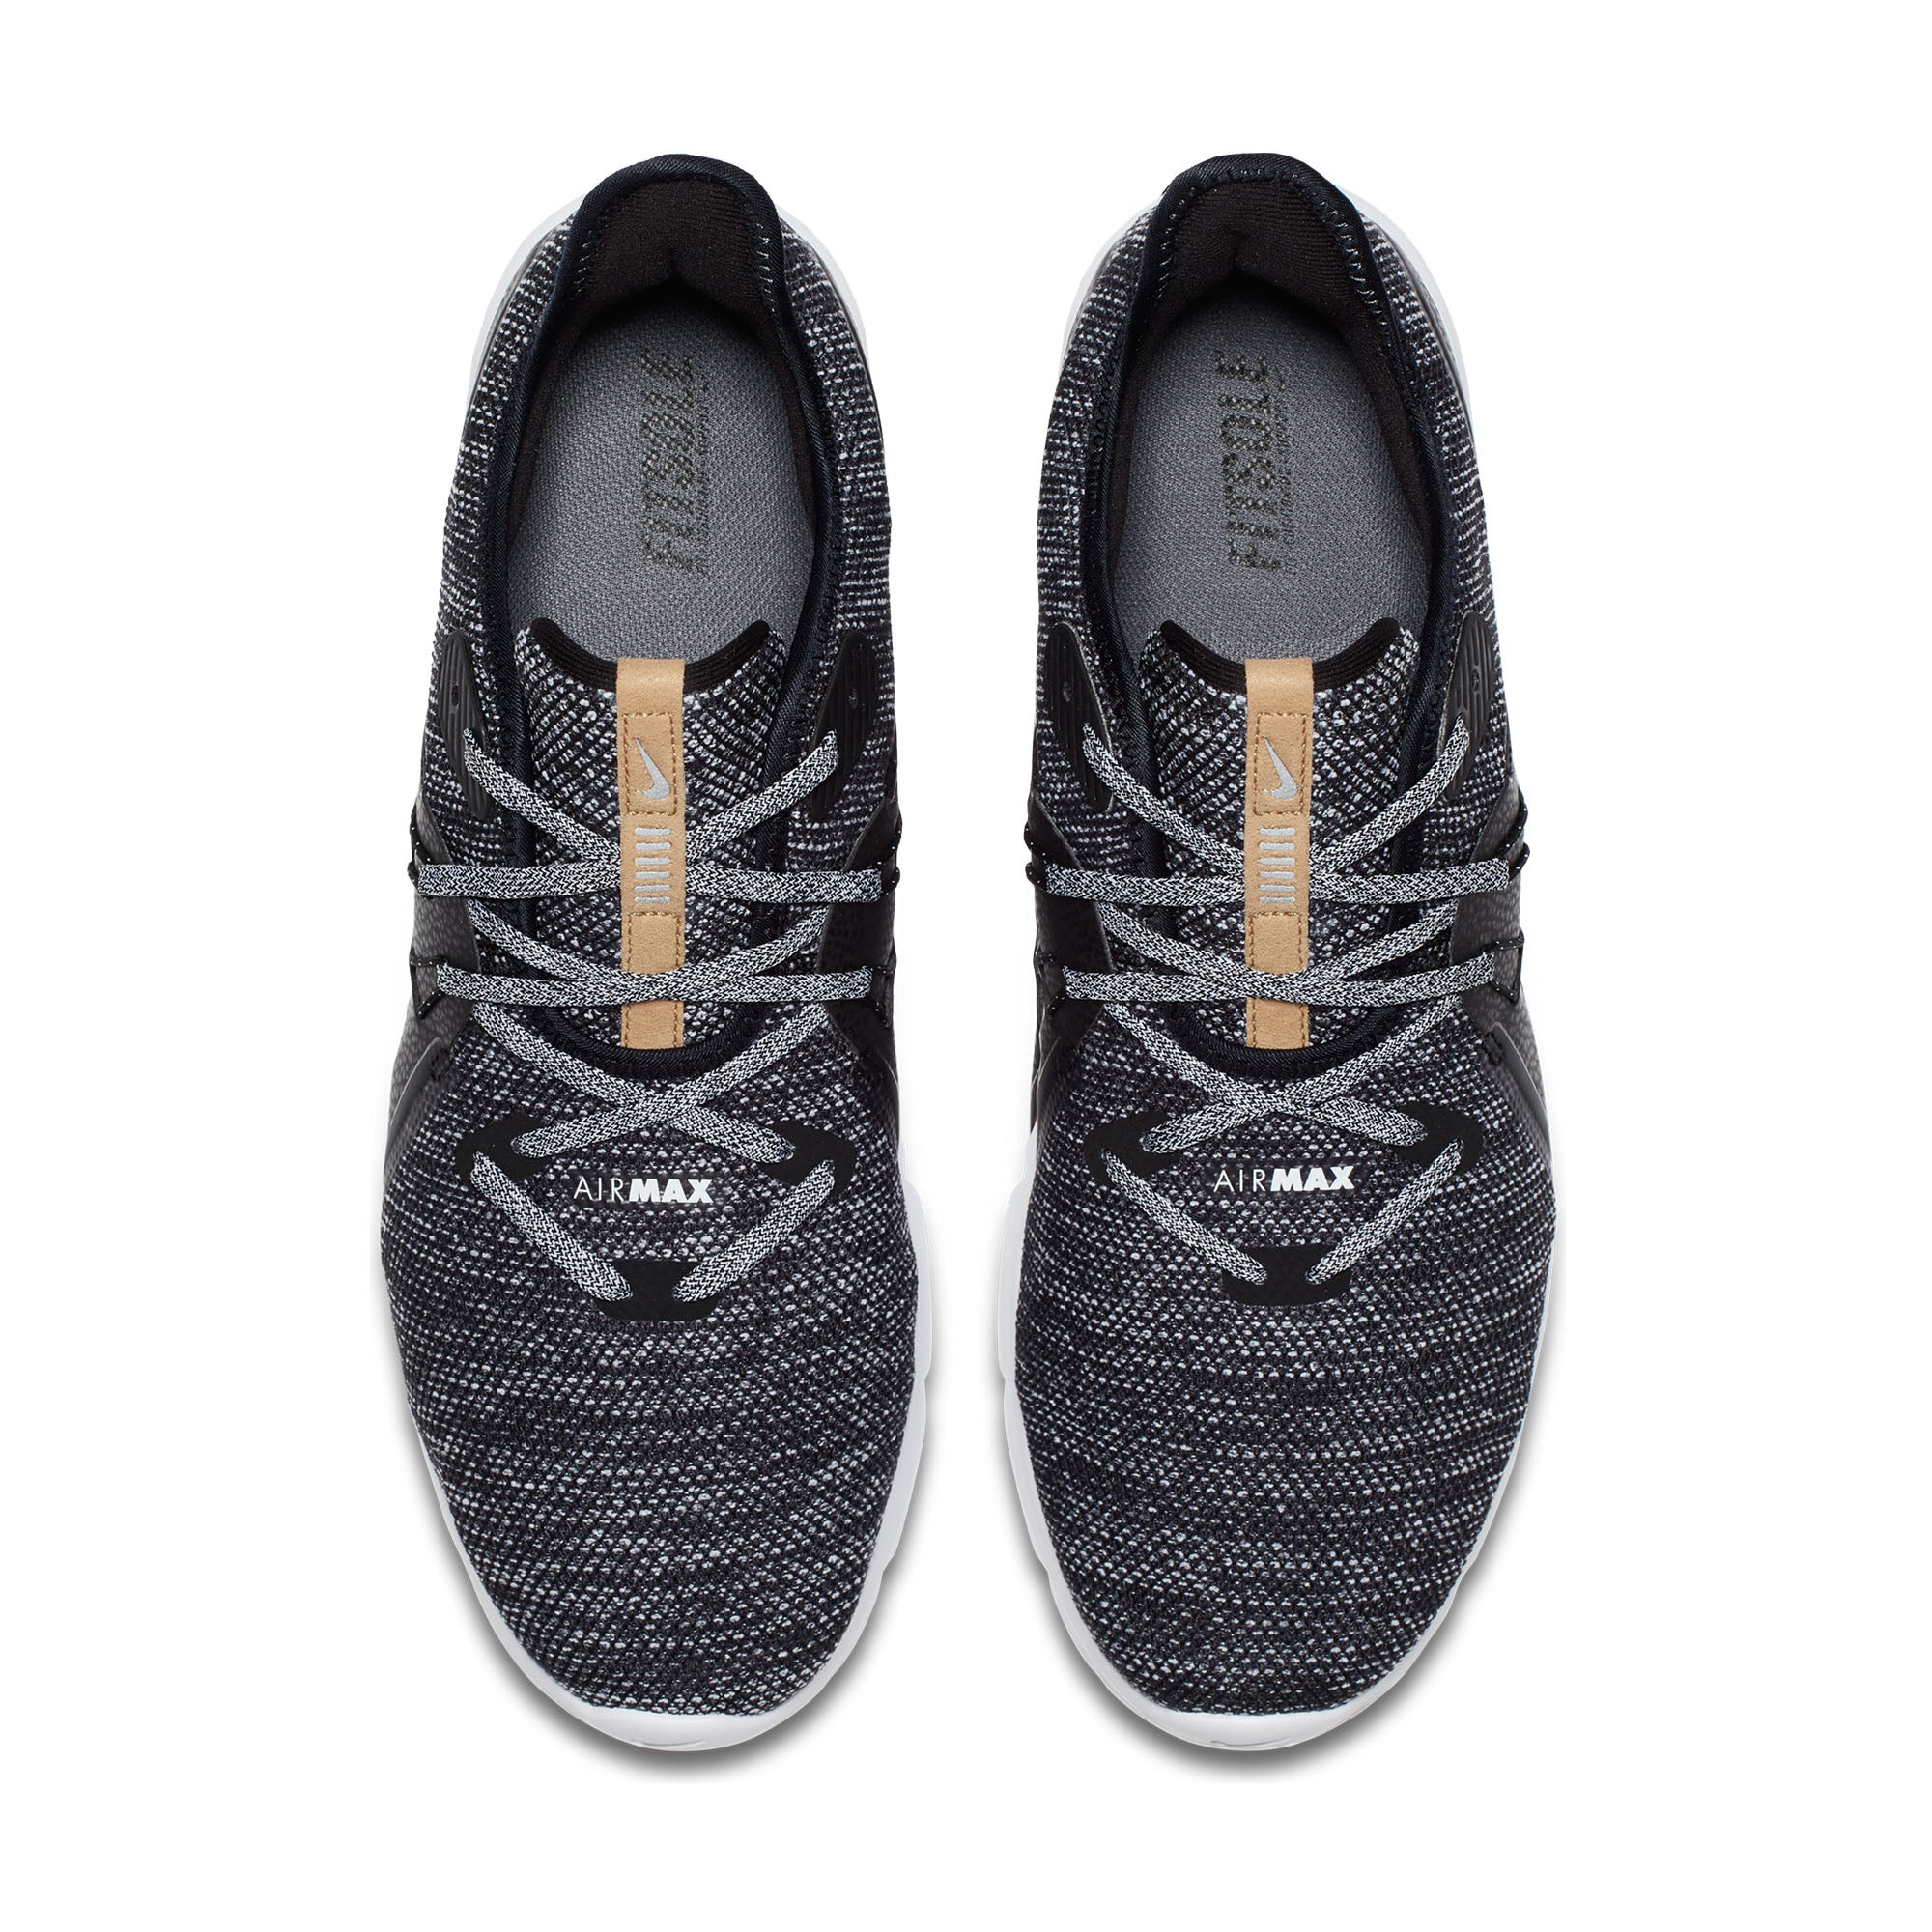 4259718452f Buy Nike Men Air Max Sequent 3 Running Shoe